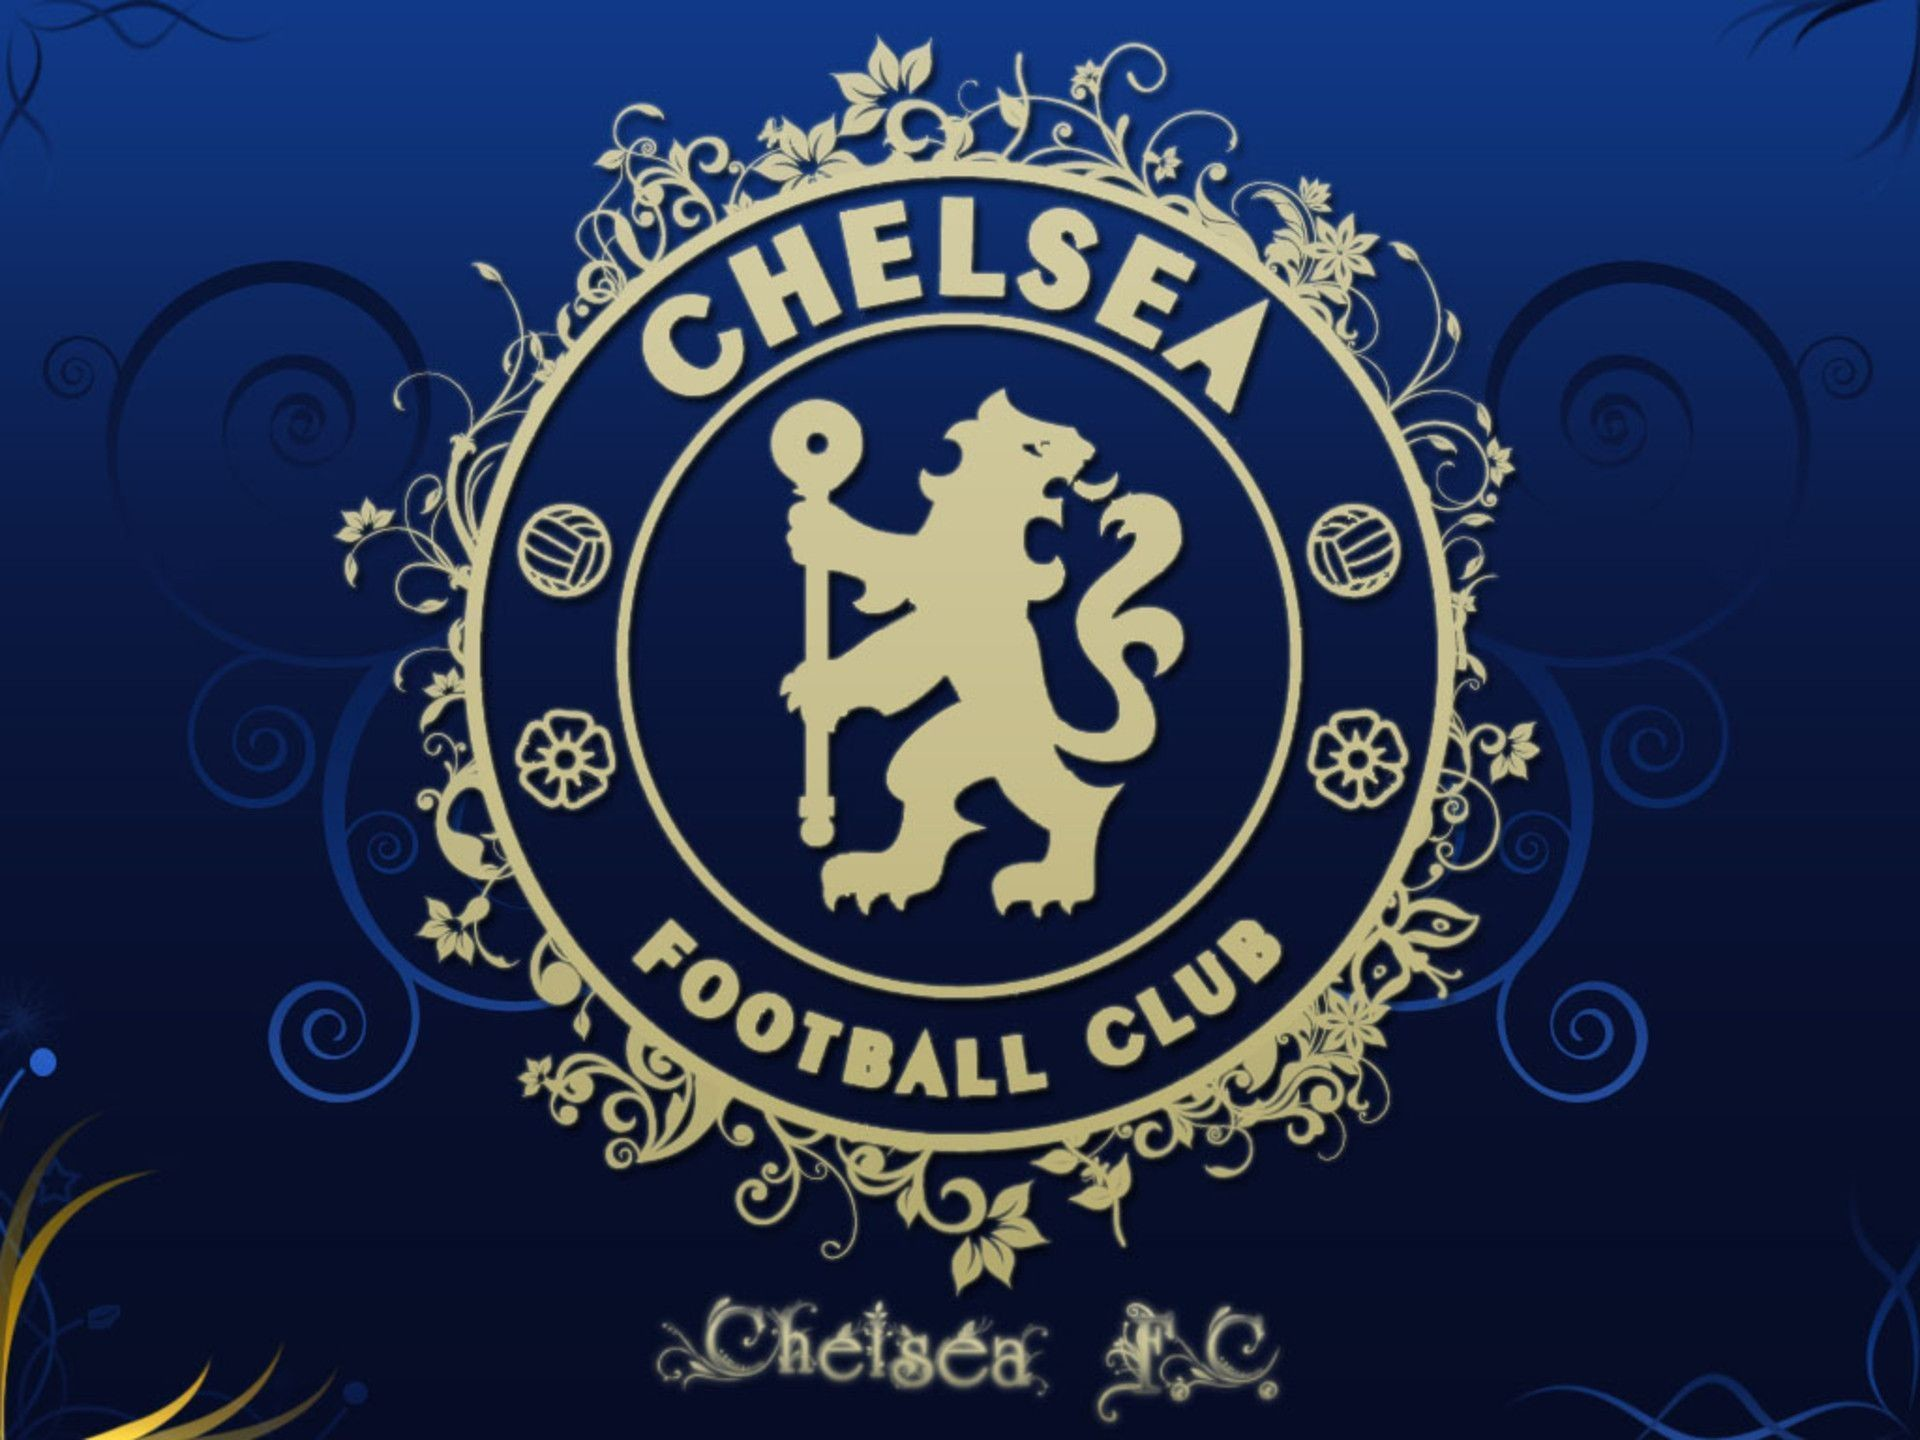 Chelsea hd wallpapers 1080p 75 images awesome chelsea fc logo wallpaper desktop background full screen hd free hd voltagebd Gallery